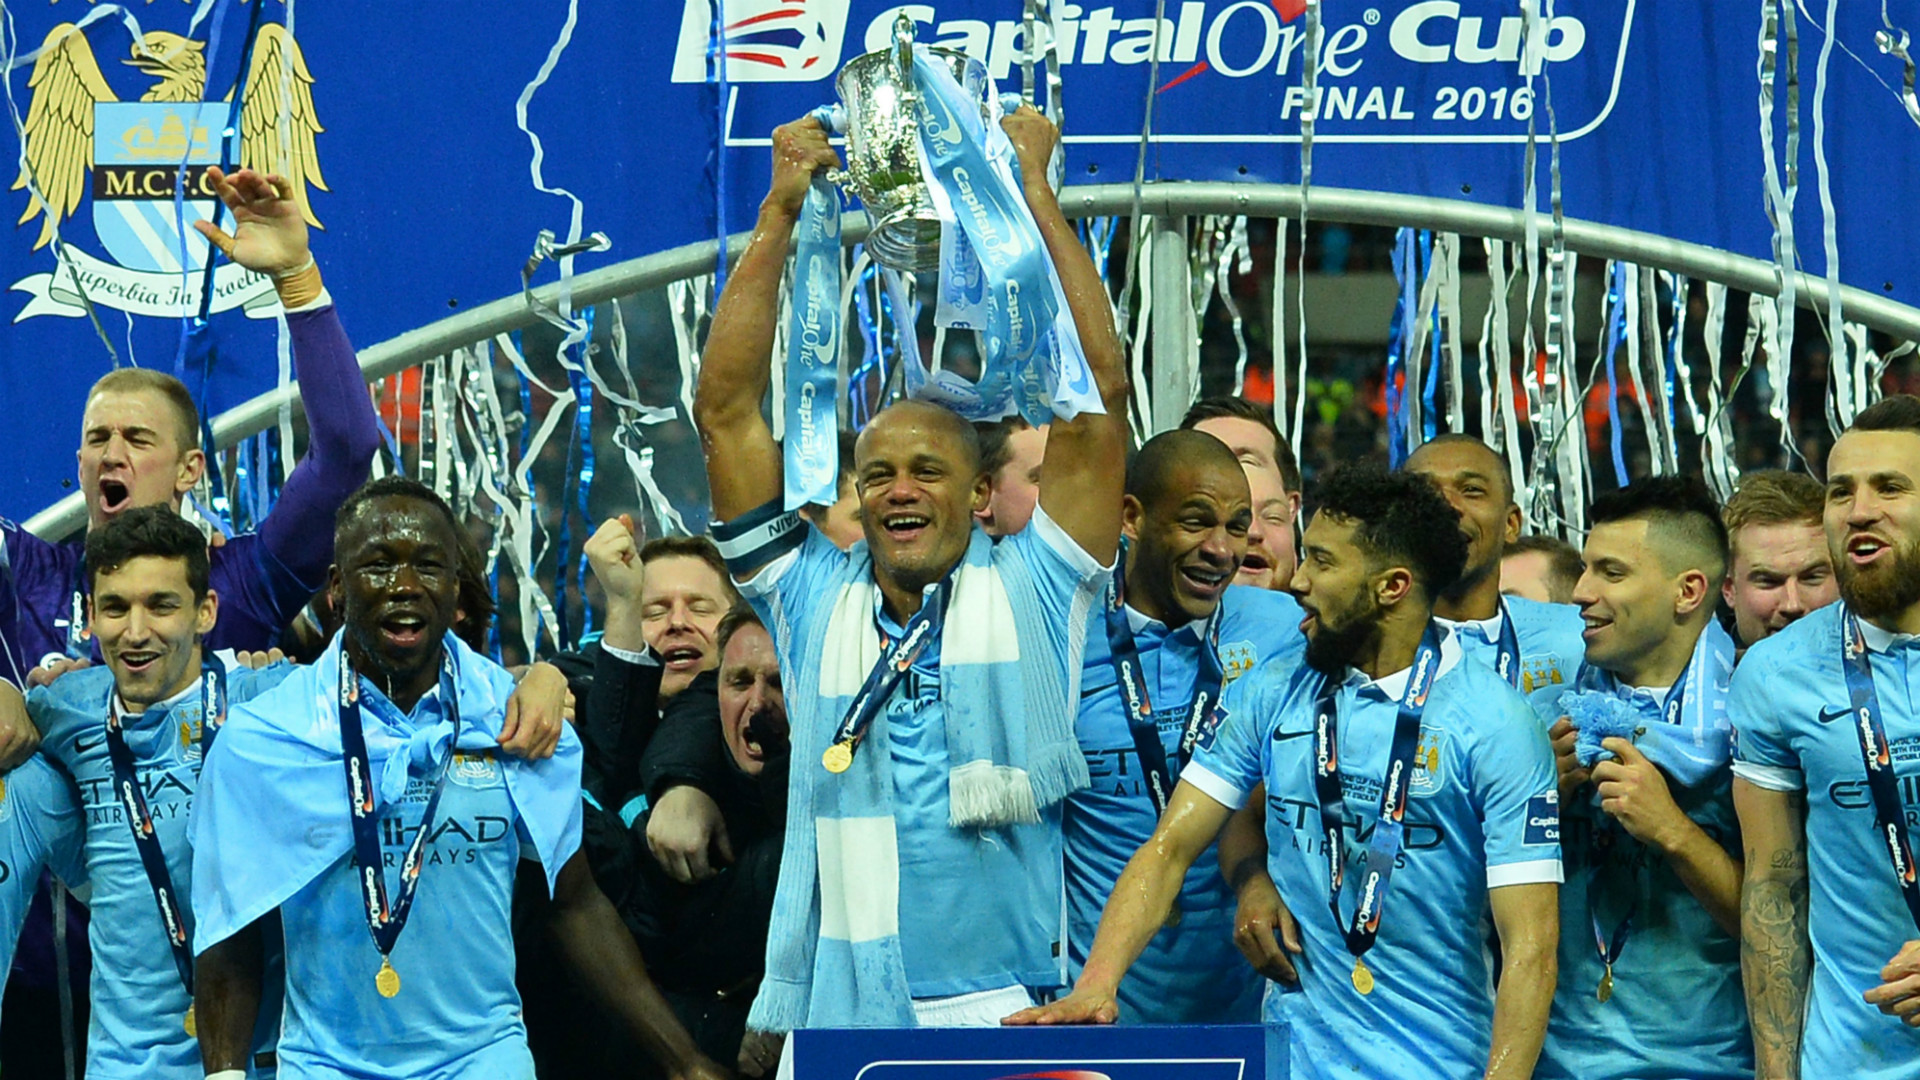 Manchester City League Cup 2016